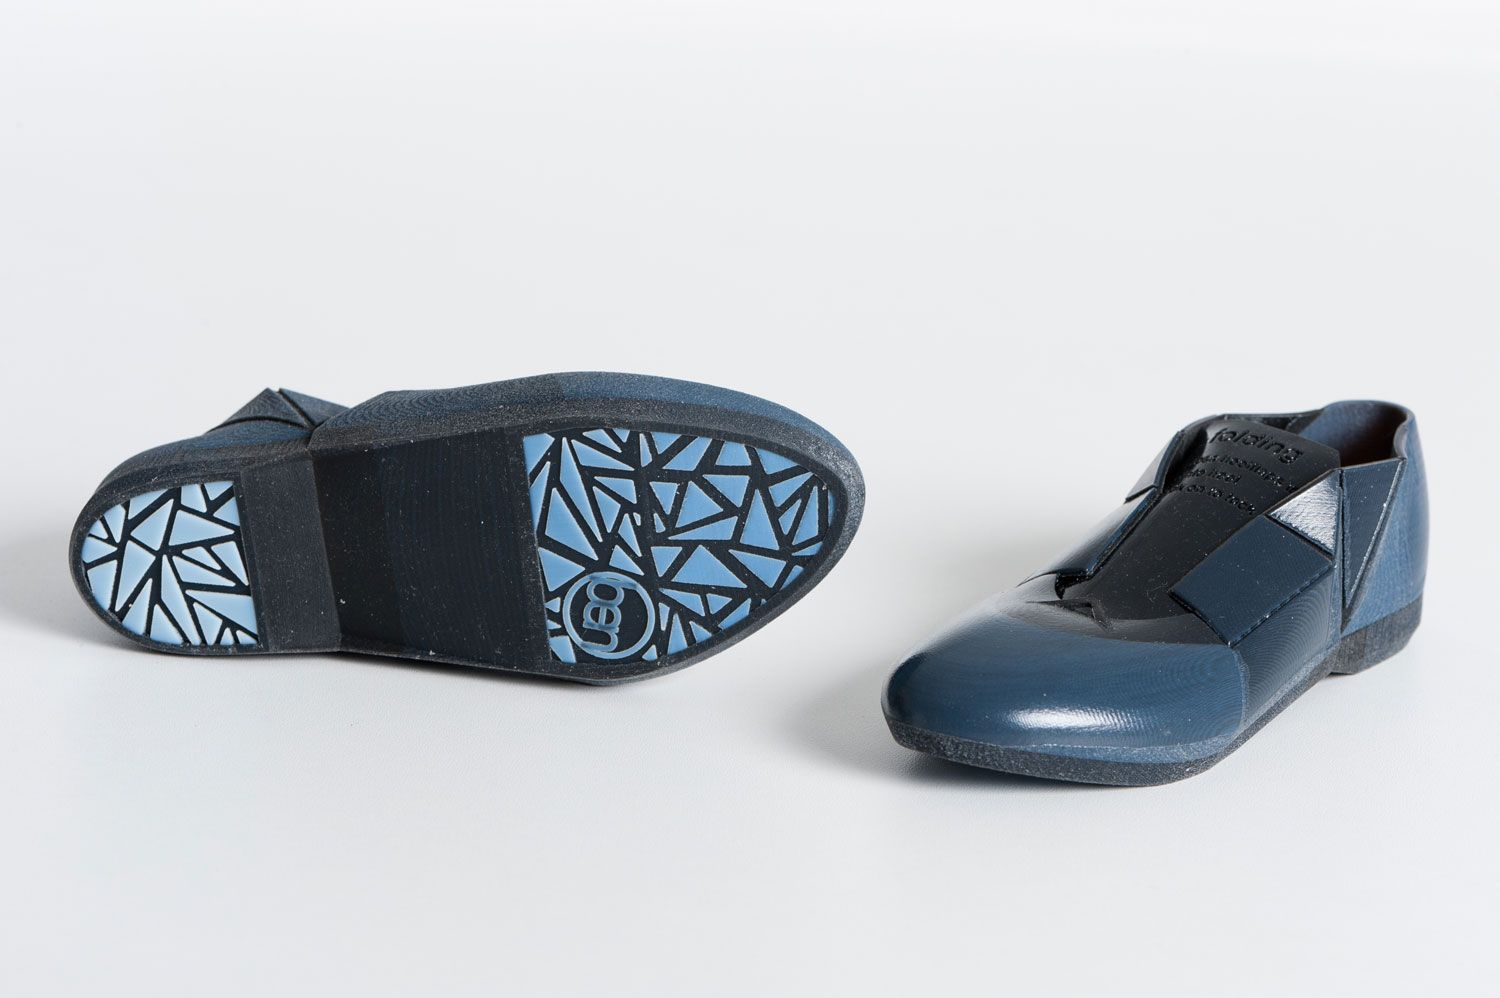 The 3D print[ed shoe] contains different materials. Some parts of the shoe are more flexible, others more rigid. By Benjamin Vermeulen